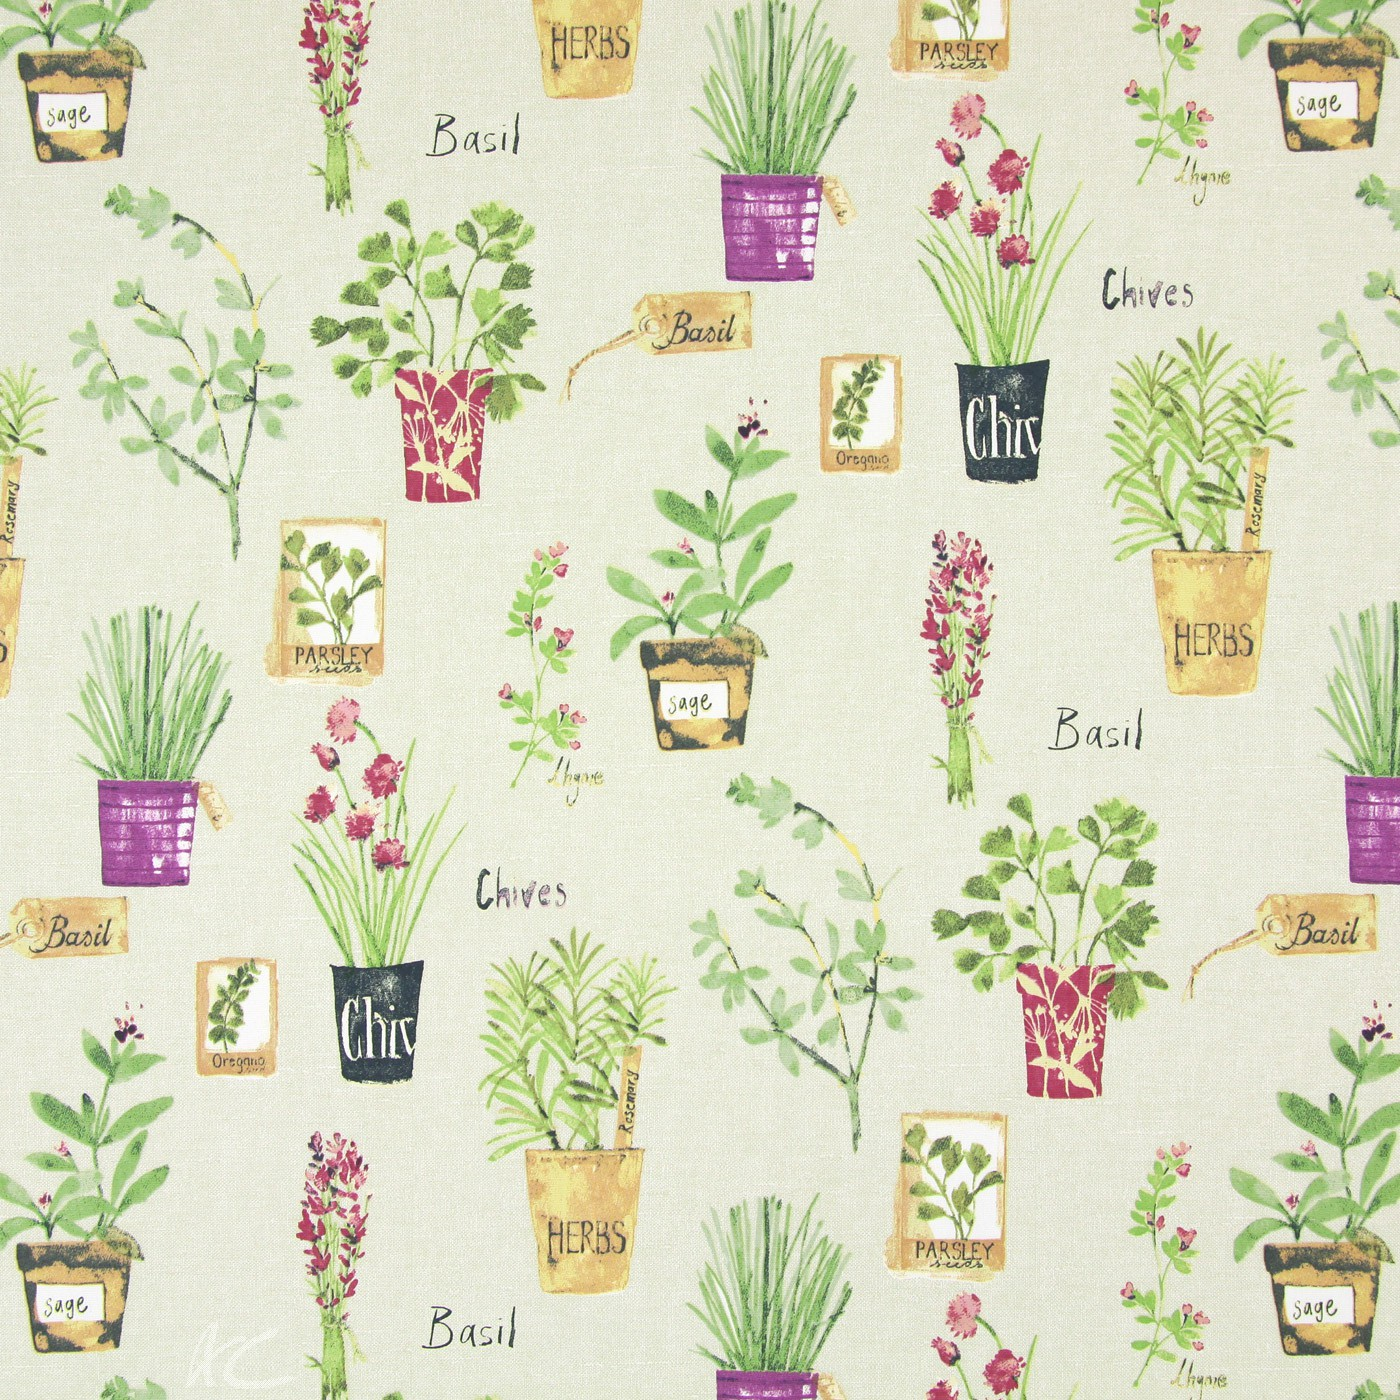 Country Fair Herb Pots Linen Made to Measure Curtains